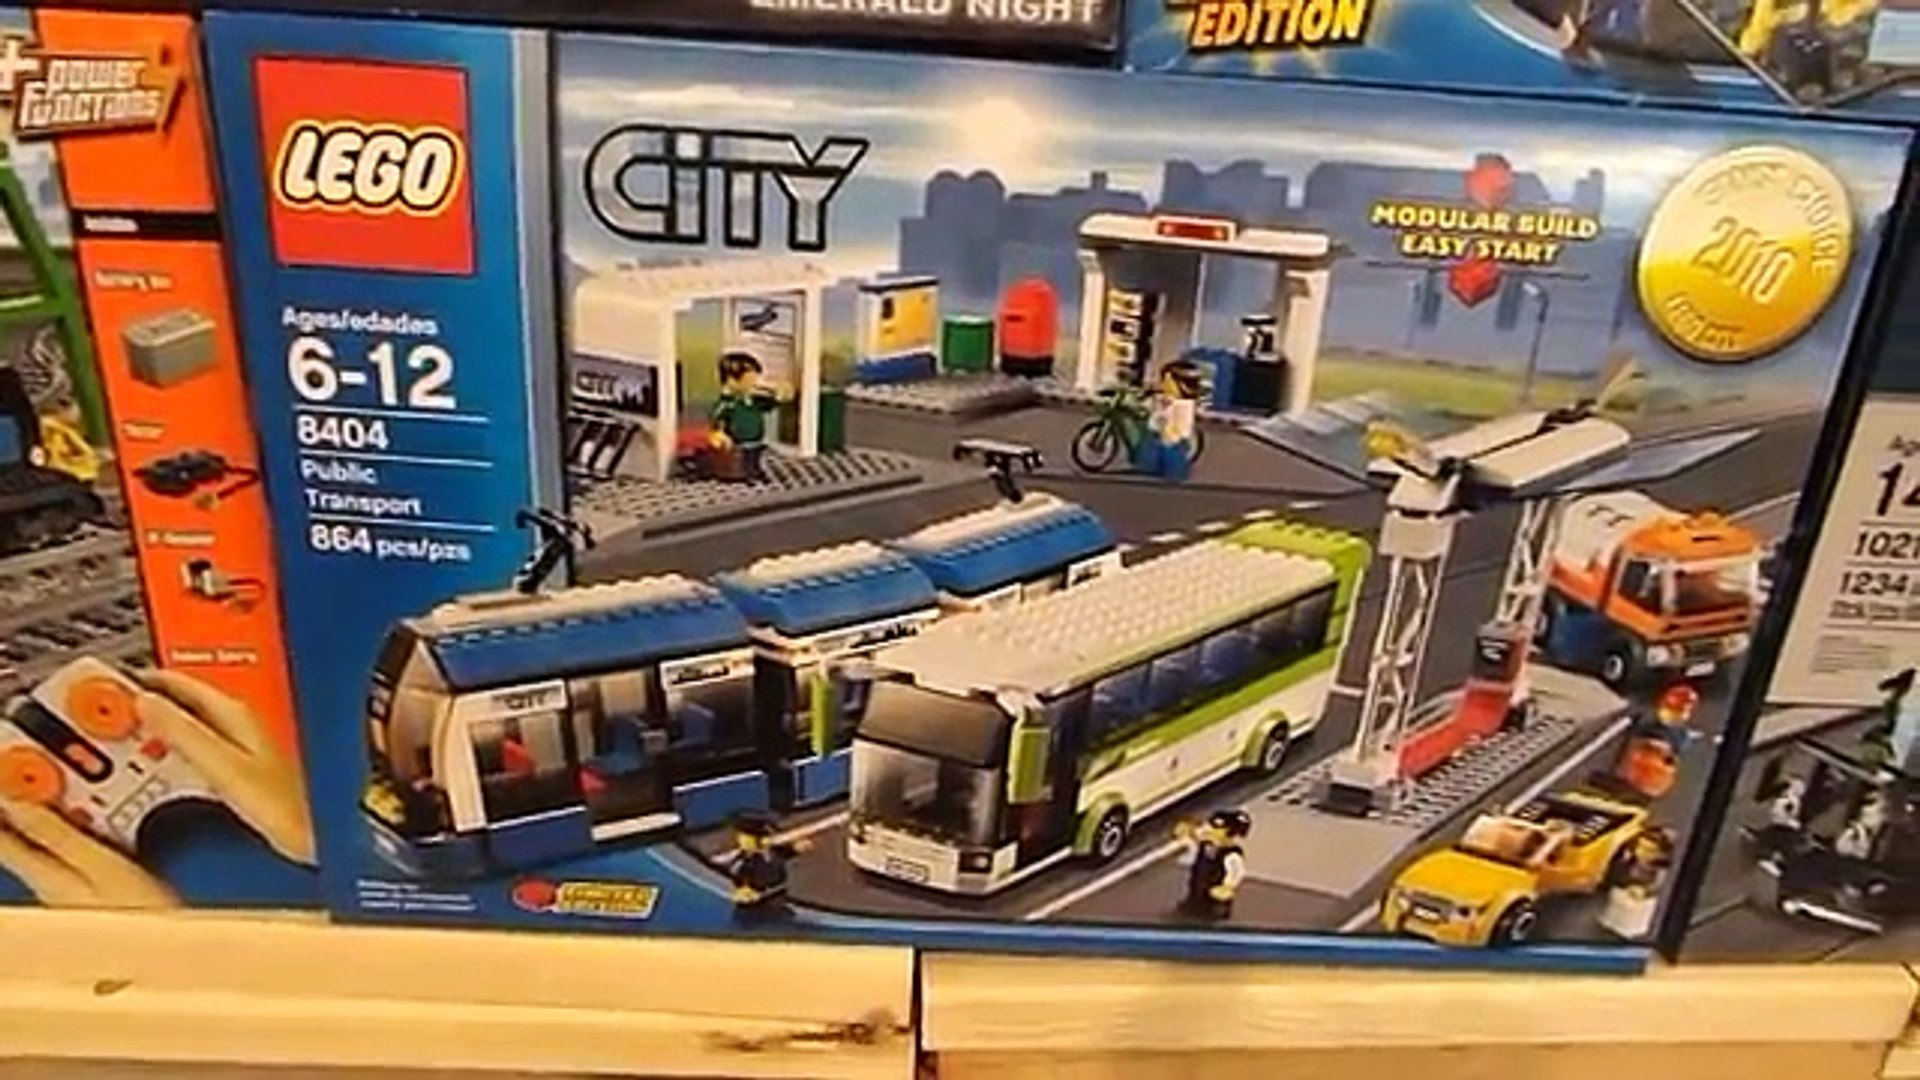 How to Add Power Functions to LEGO Public Transport Train #8404